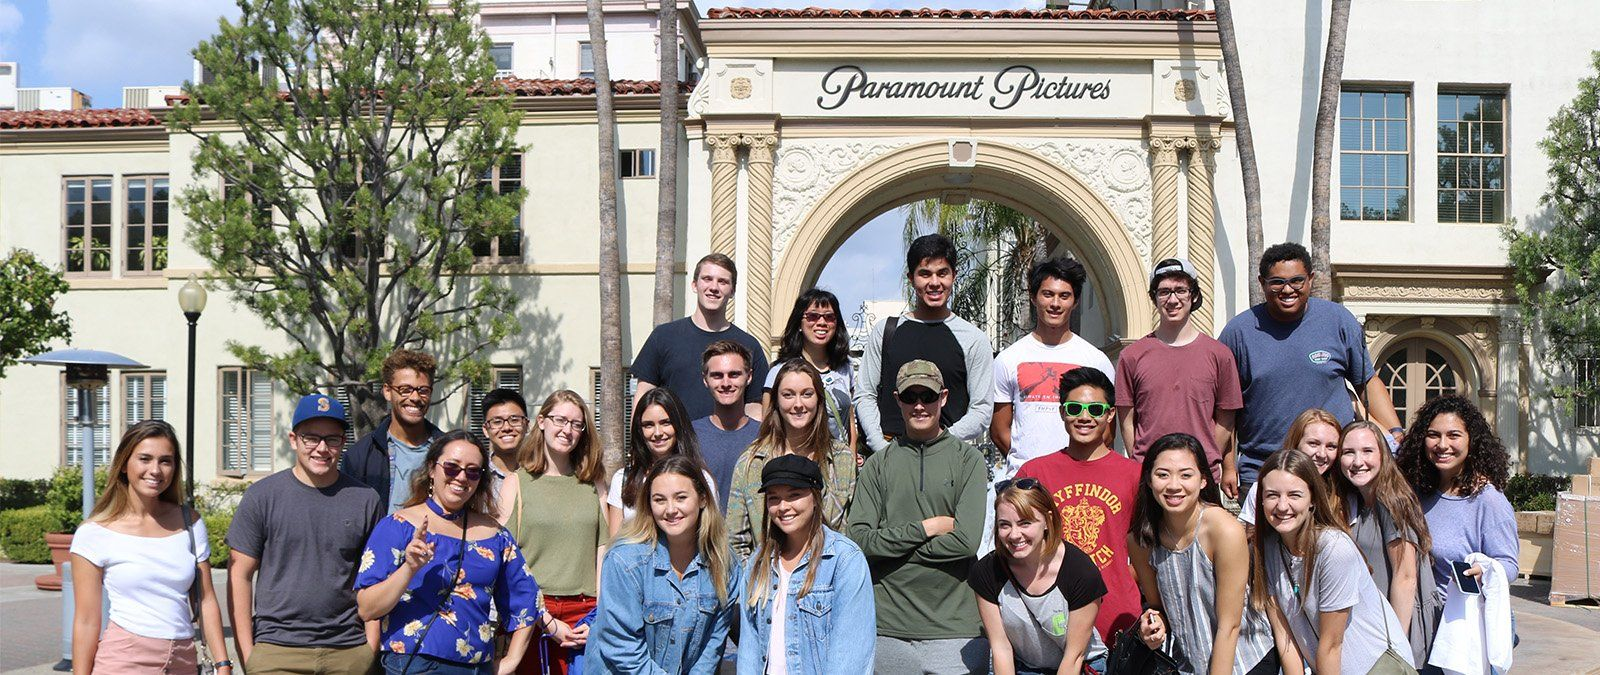 A media communication class poses for a photo in front of Paramount Studios during a class trip.